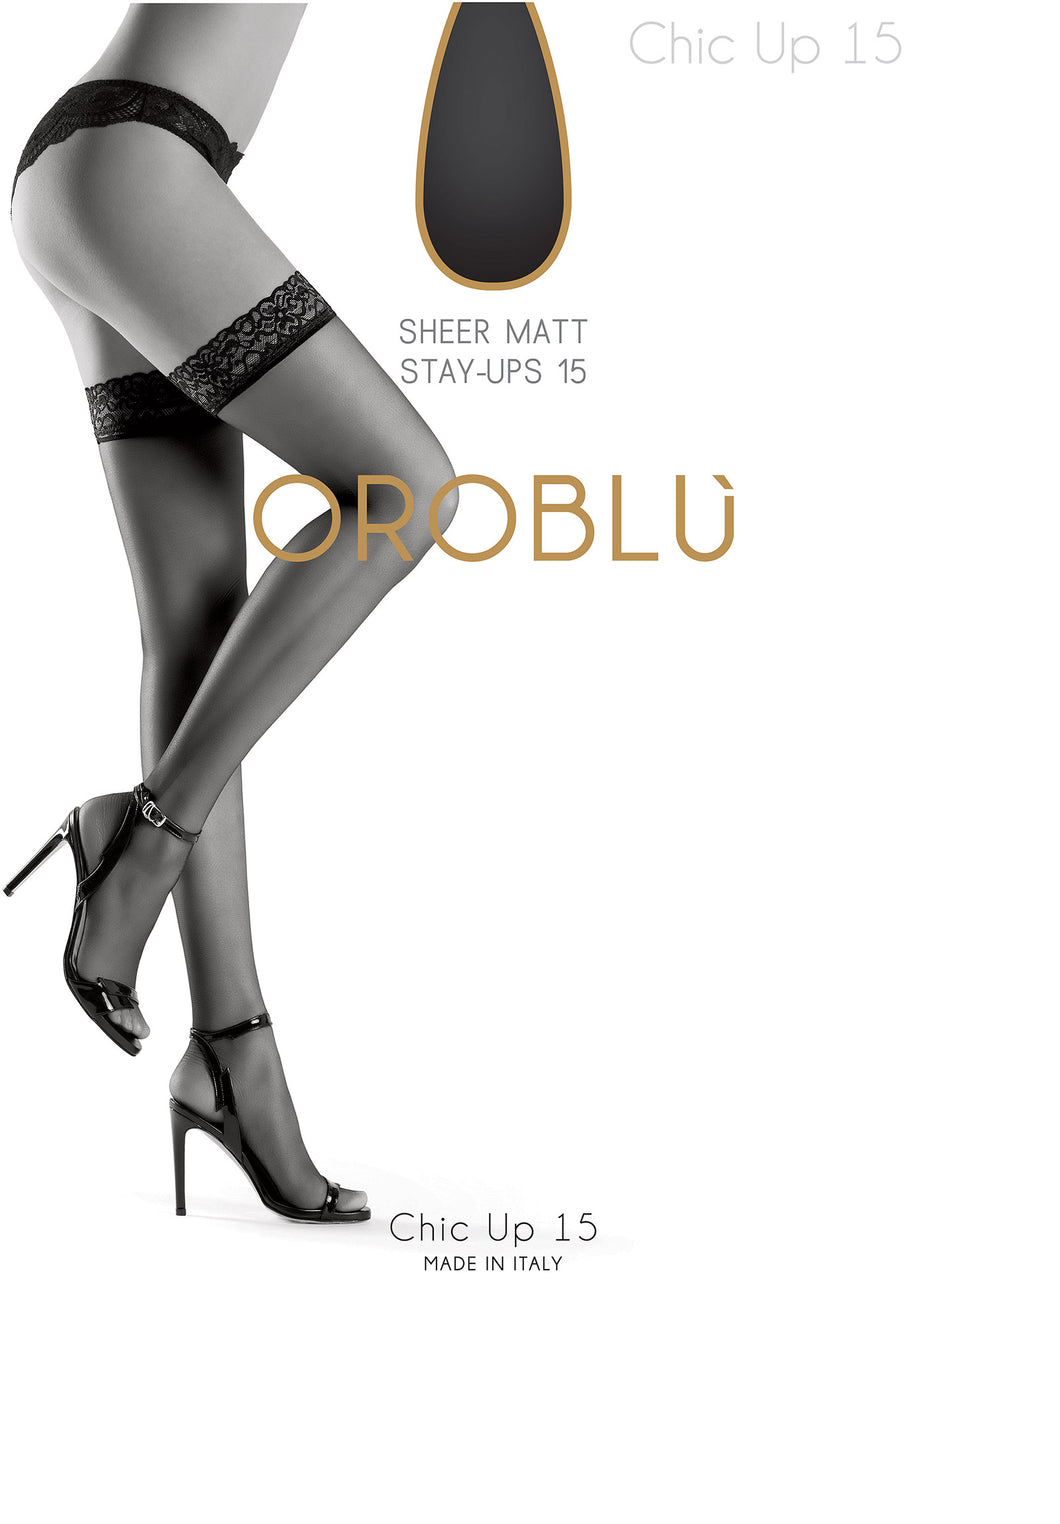 Oroblu Bas chic up 15 OR1101500 rio